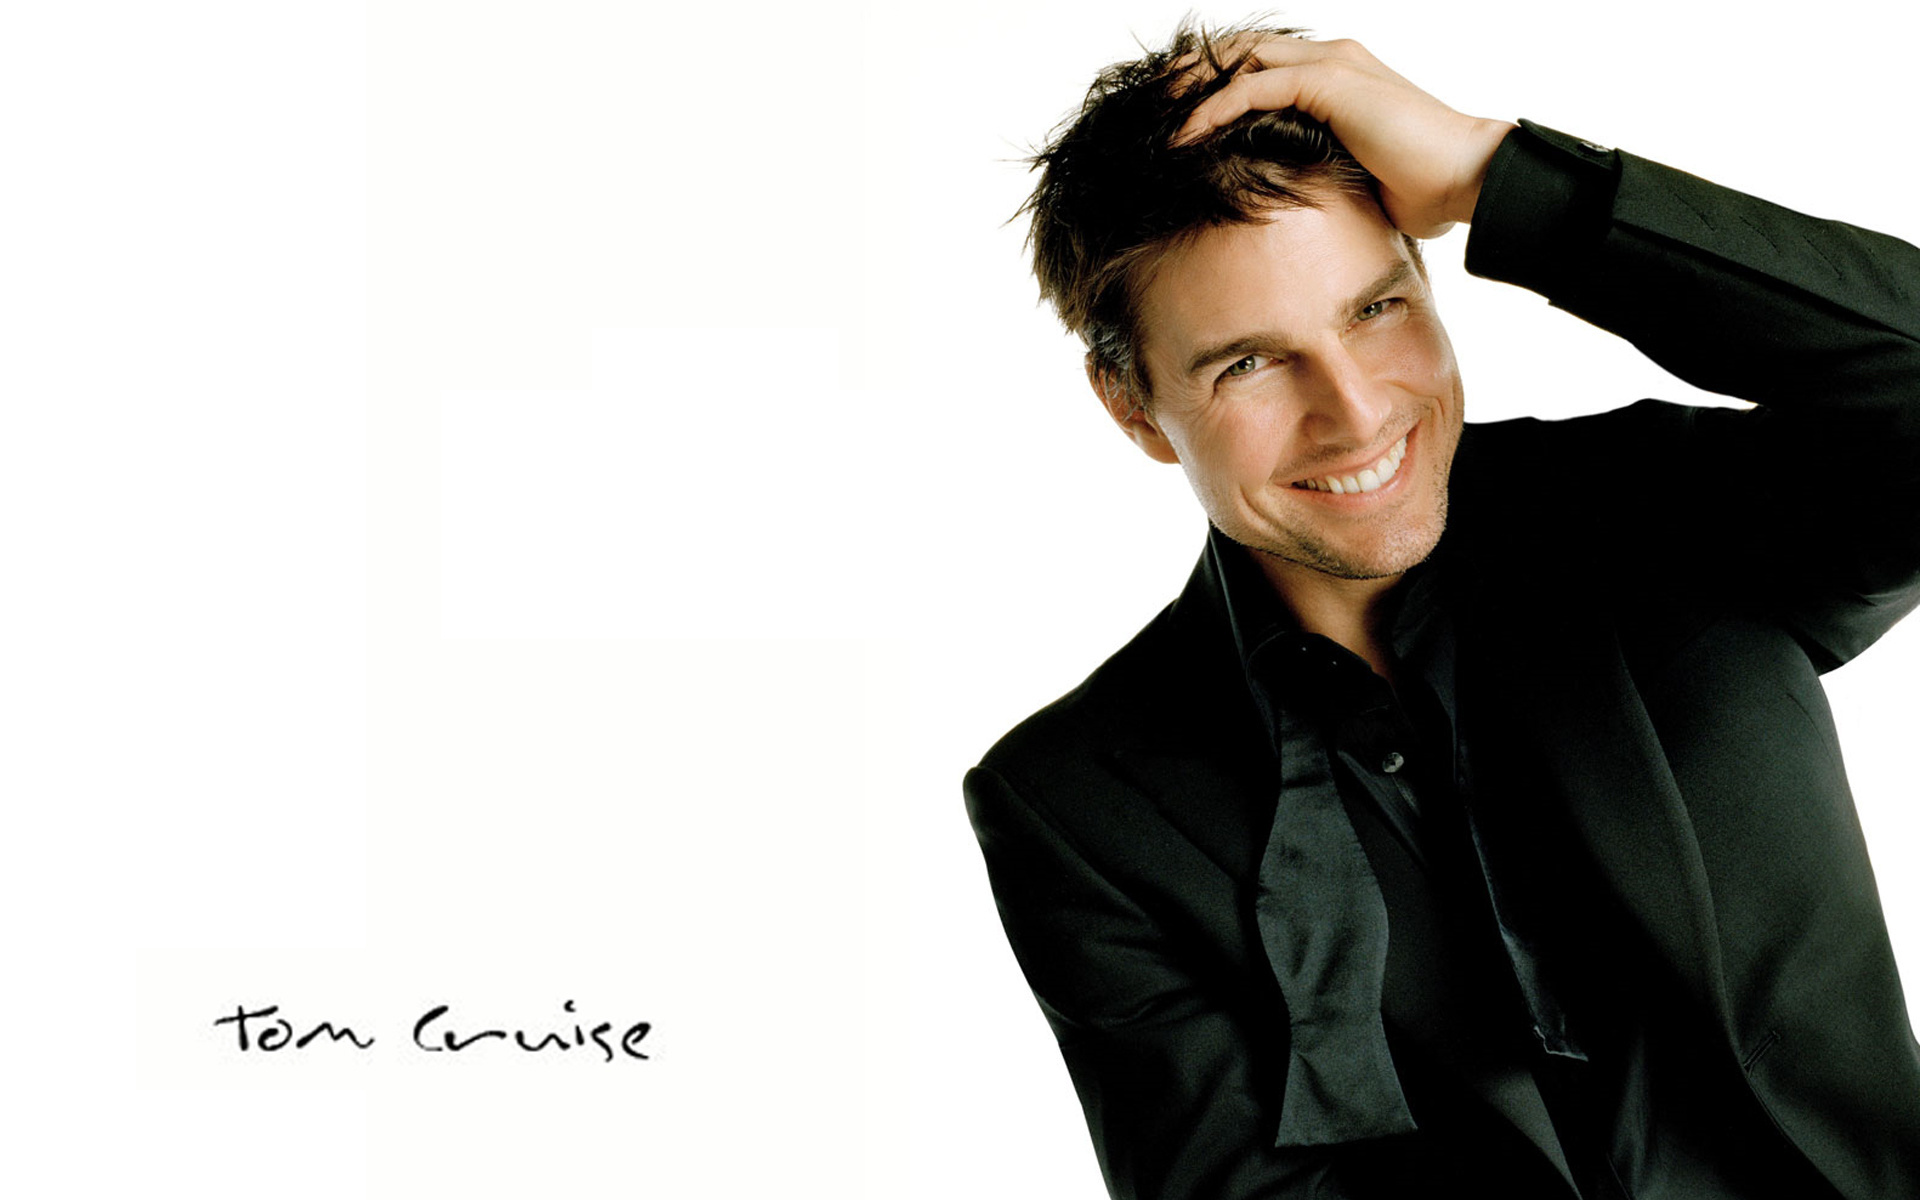 Tom Cruise Wallpapers HD 6932299 1920x1200